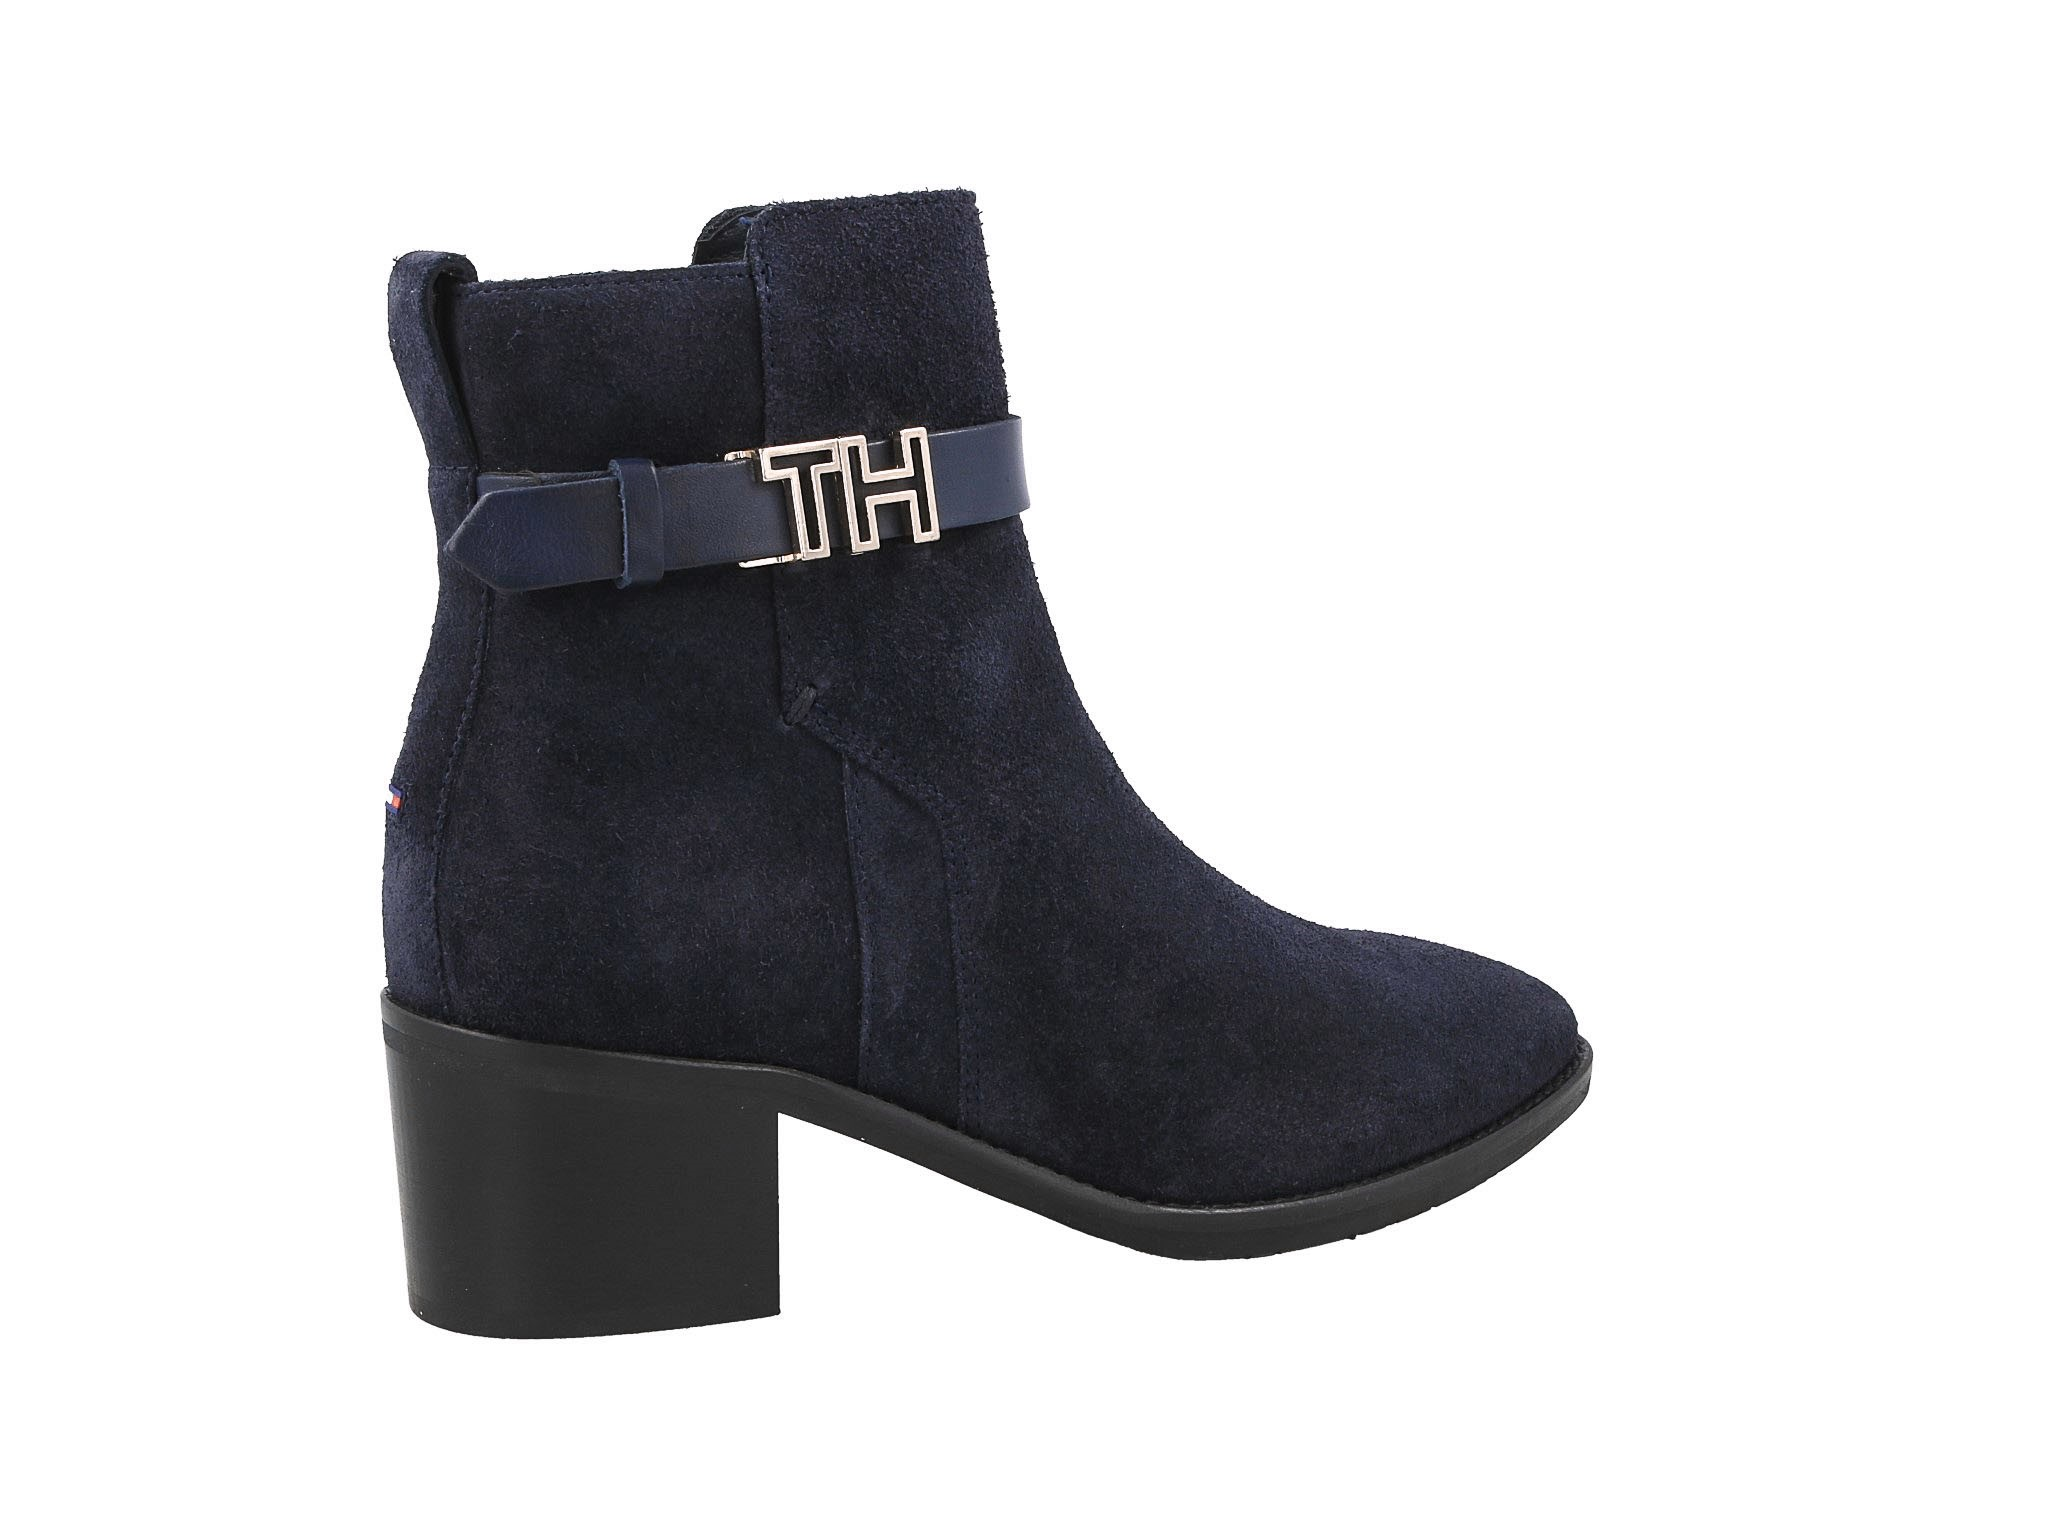 Tommy Hilfiger Th Hardware Suede Bootie (FW0FW04285